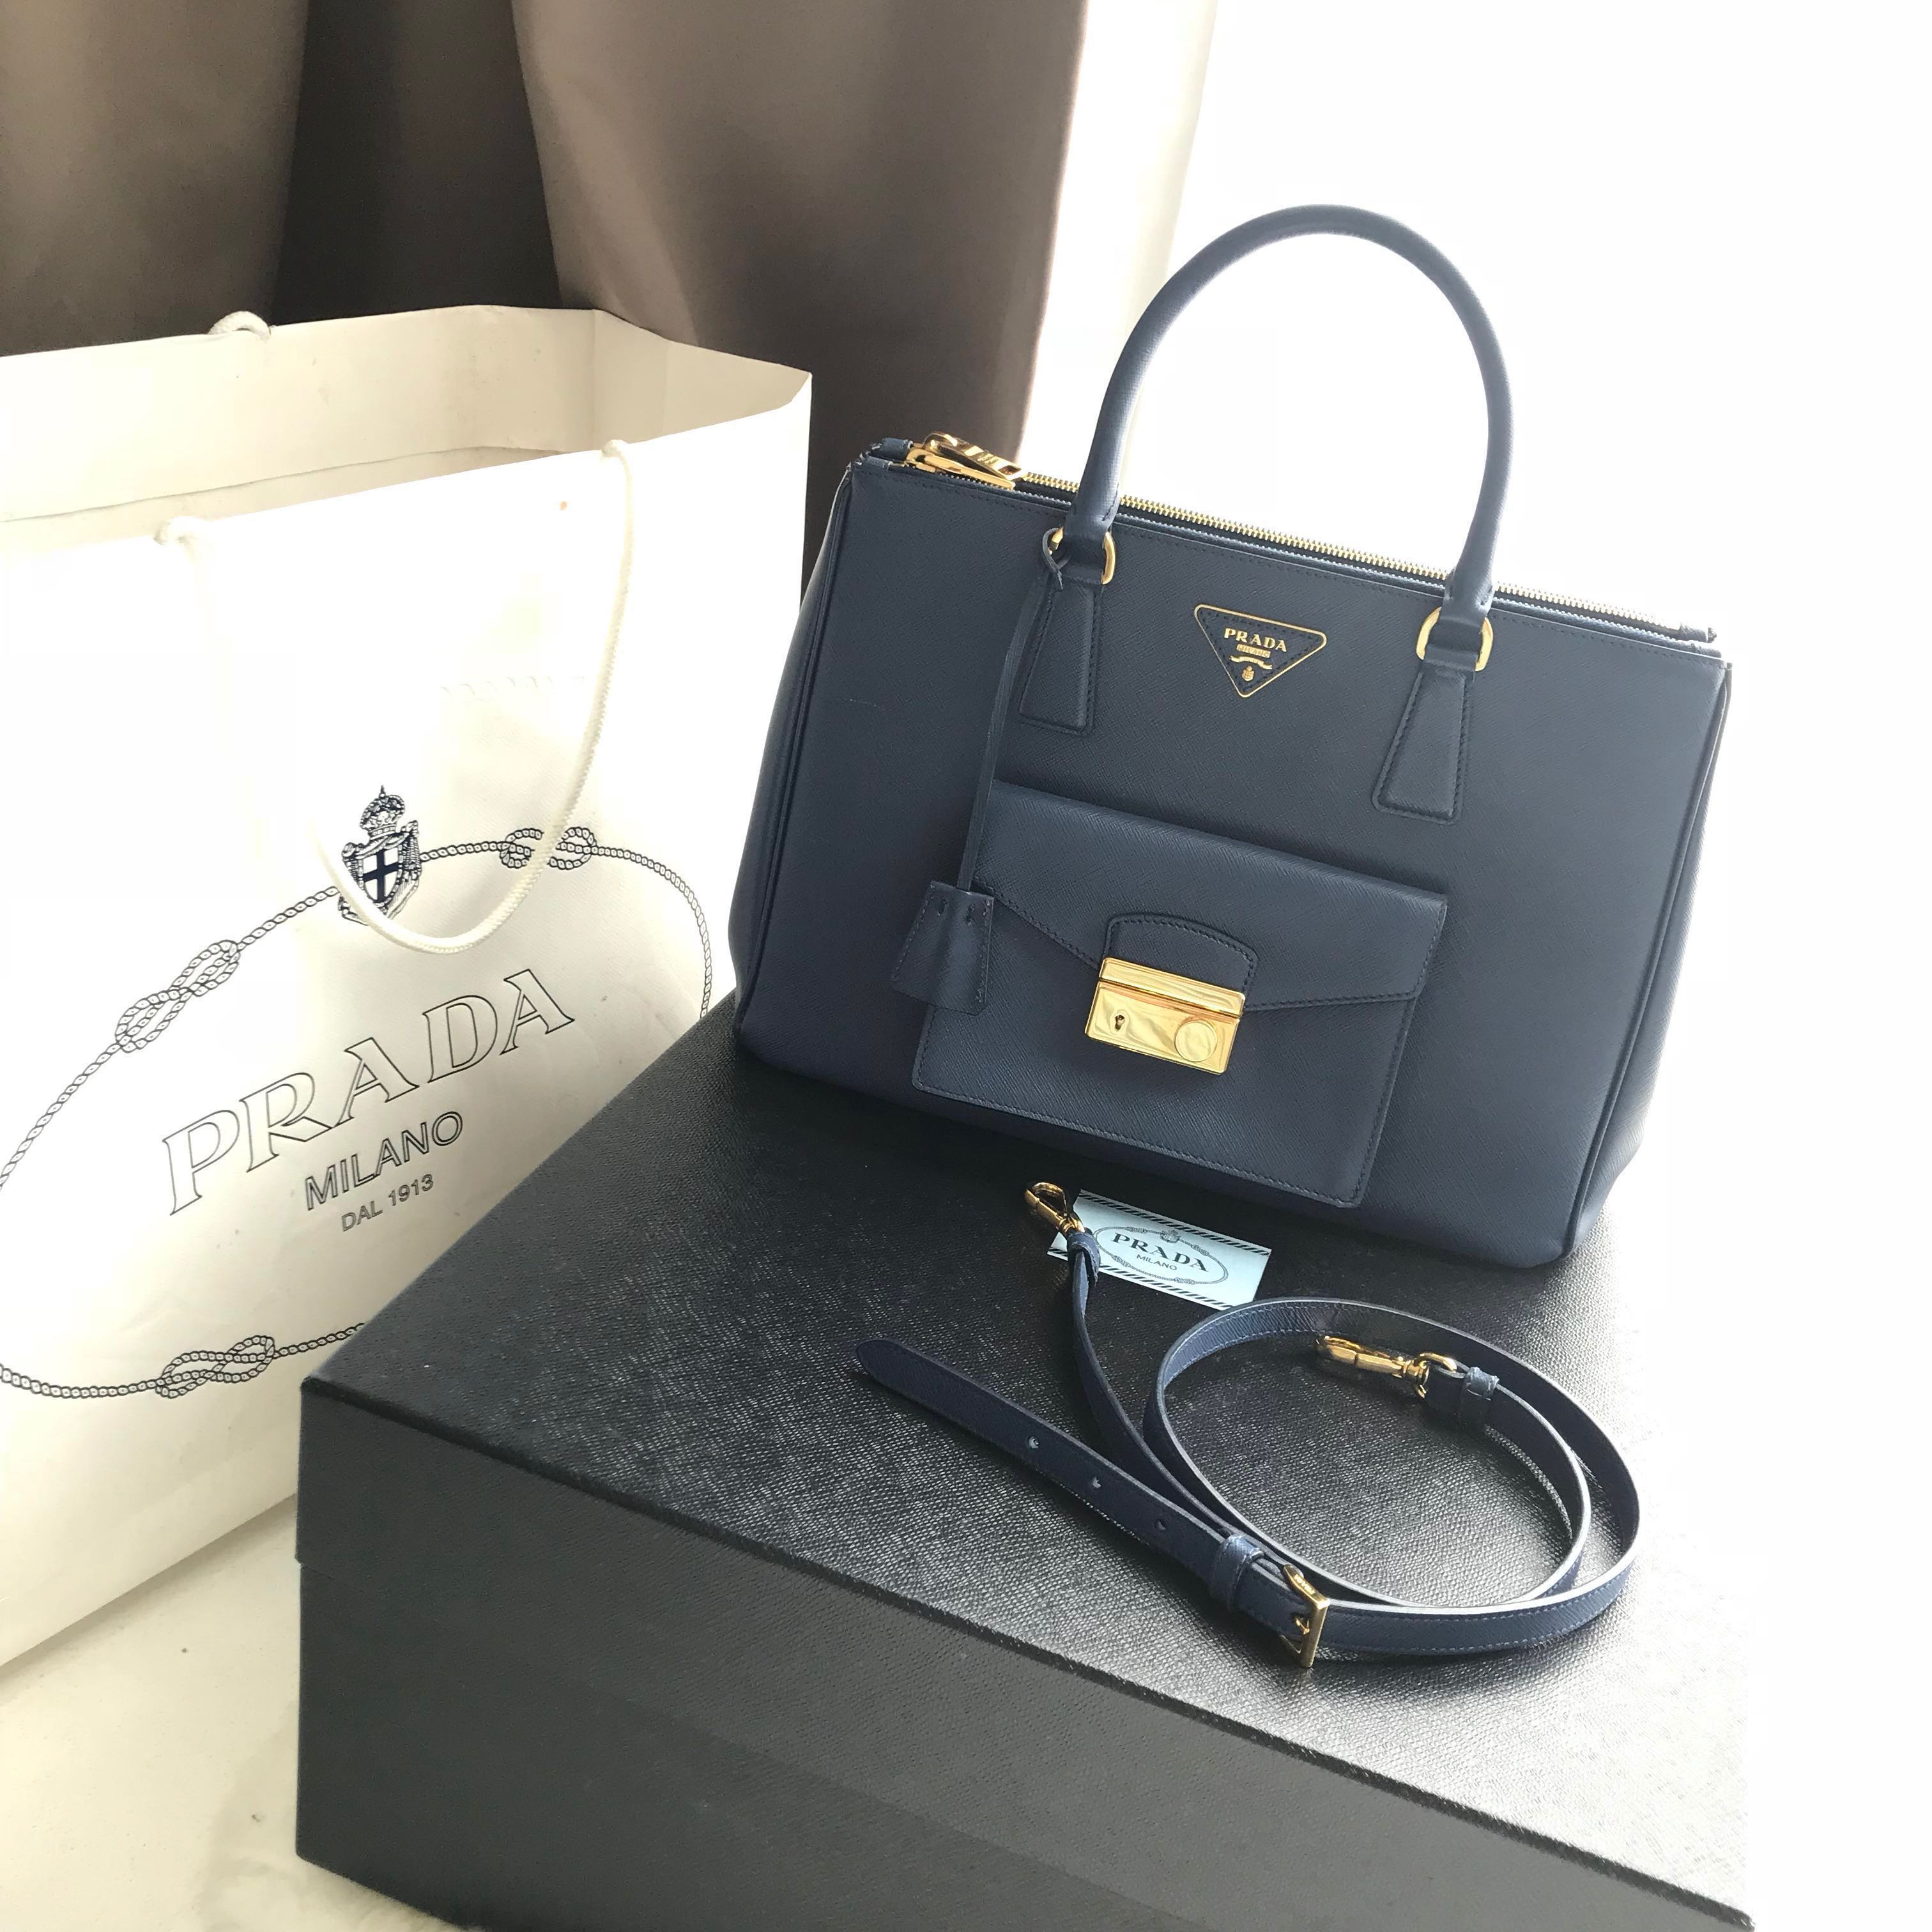 64c22a42a6af7d Priced to Clear!$550 Authentic Prada Saffiano Lux Bag BN2674, Luxury ...